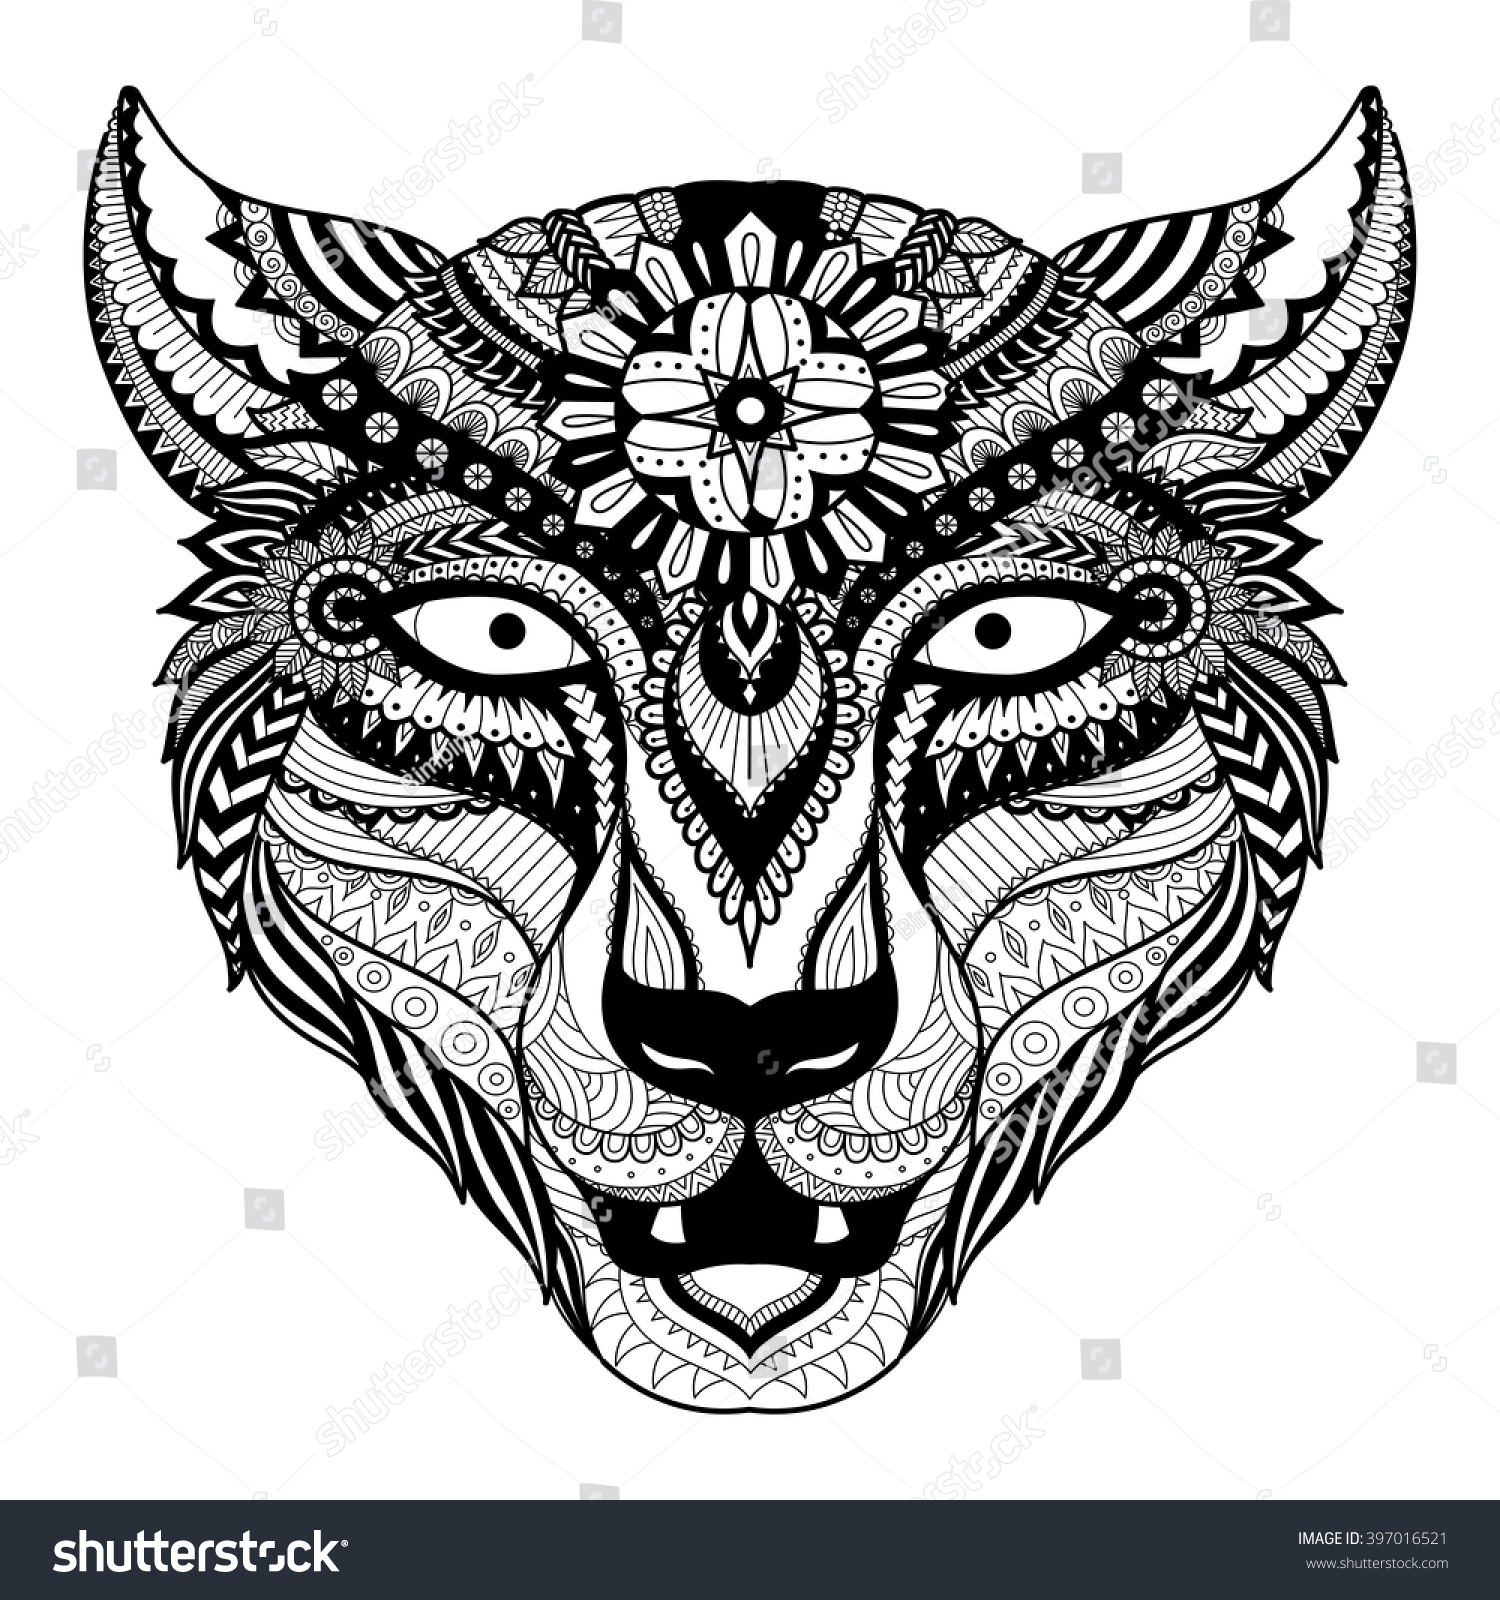 Line Art T Shirt Design : Leopard line art design coloring book stock vector